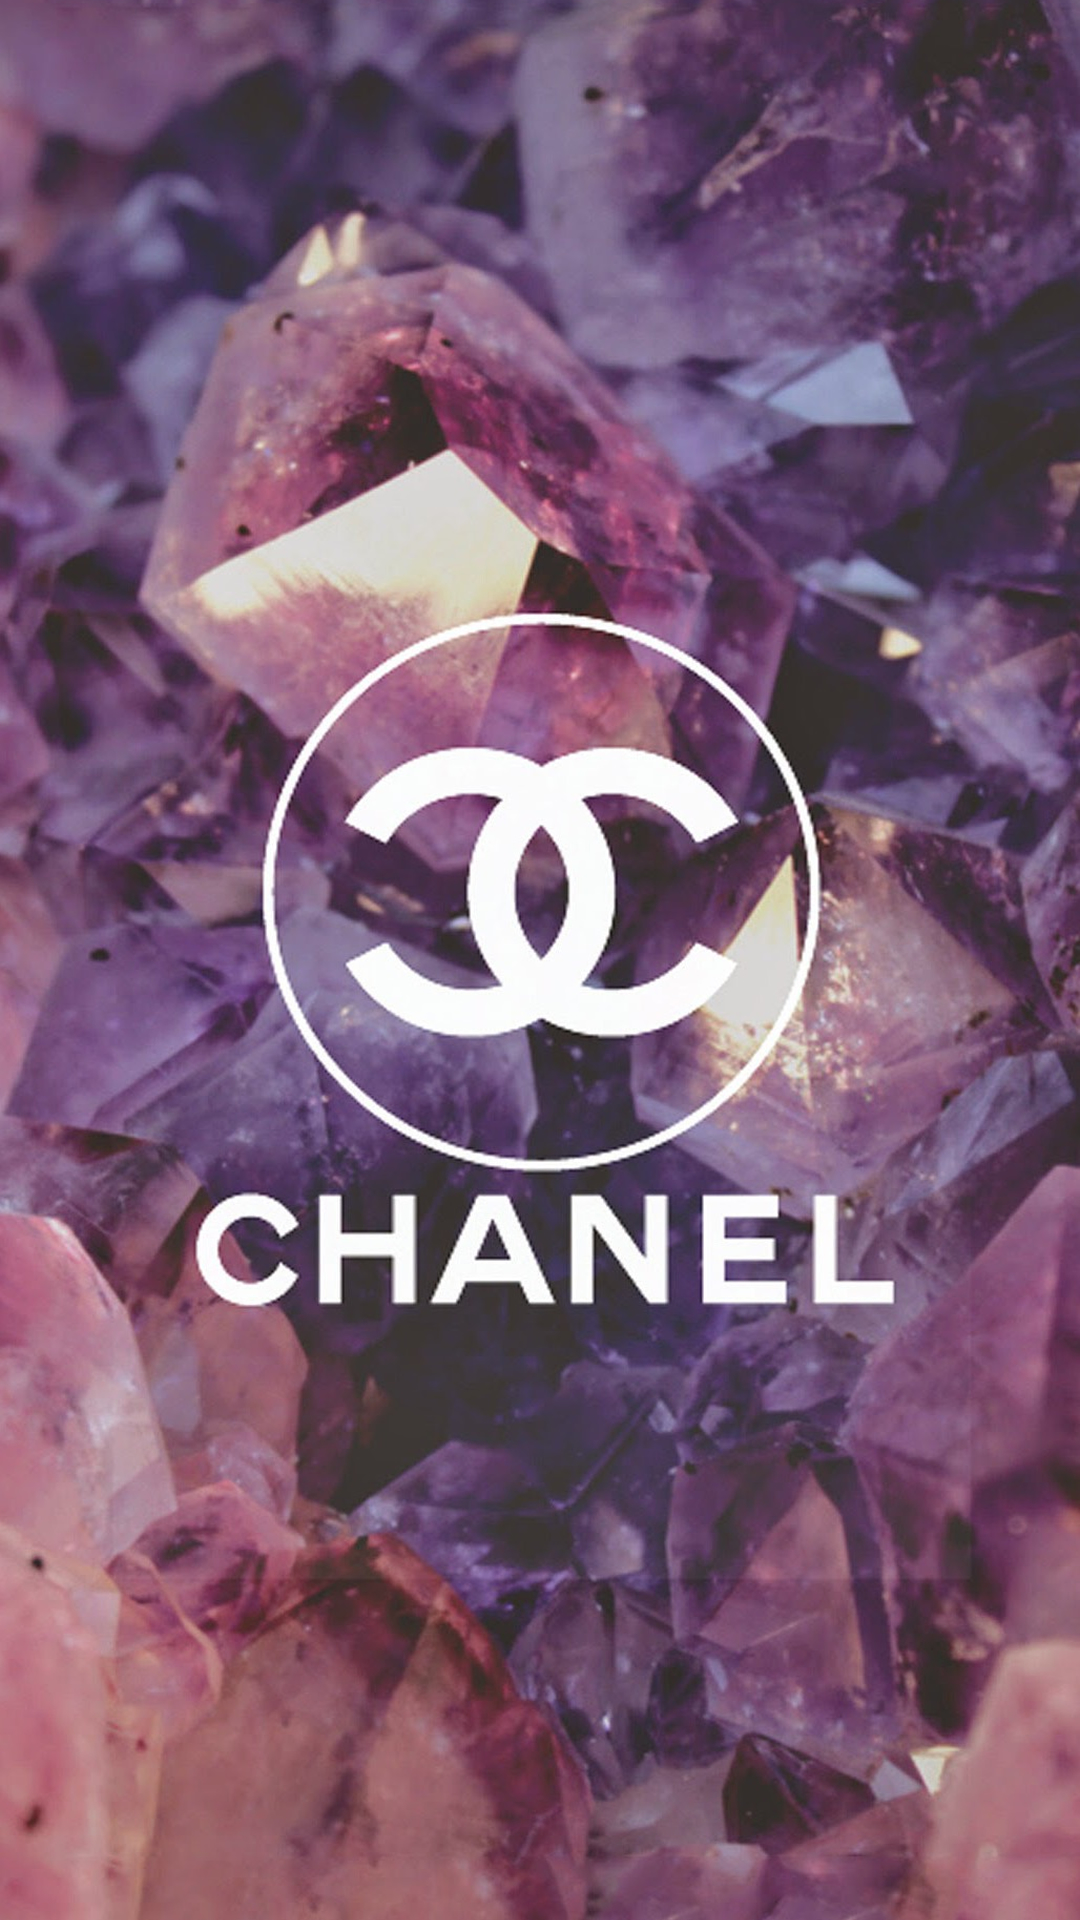 Chanel Logo Diamonds iPhone 6 Wallpaper Download iPhone Wallpapers 1080x1920